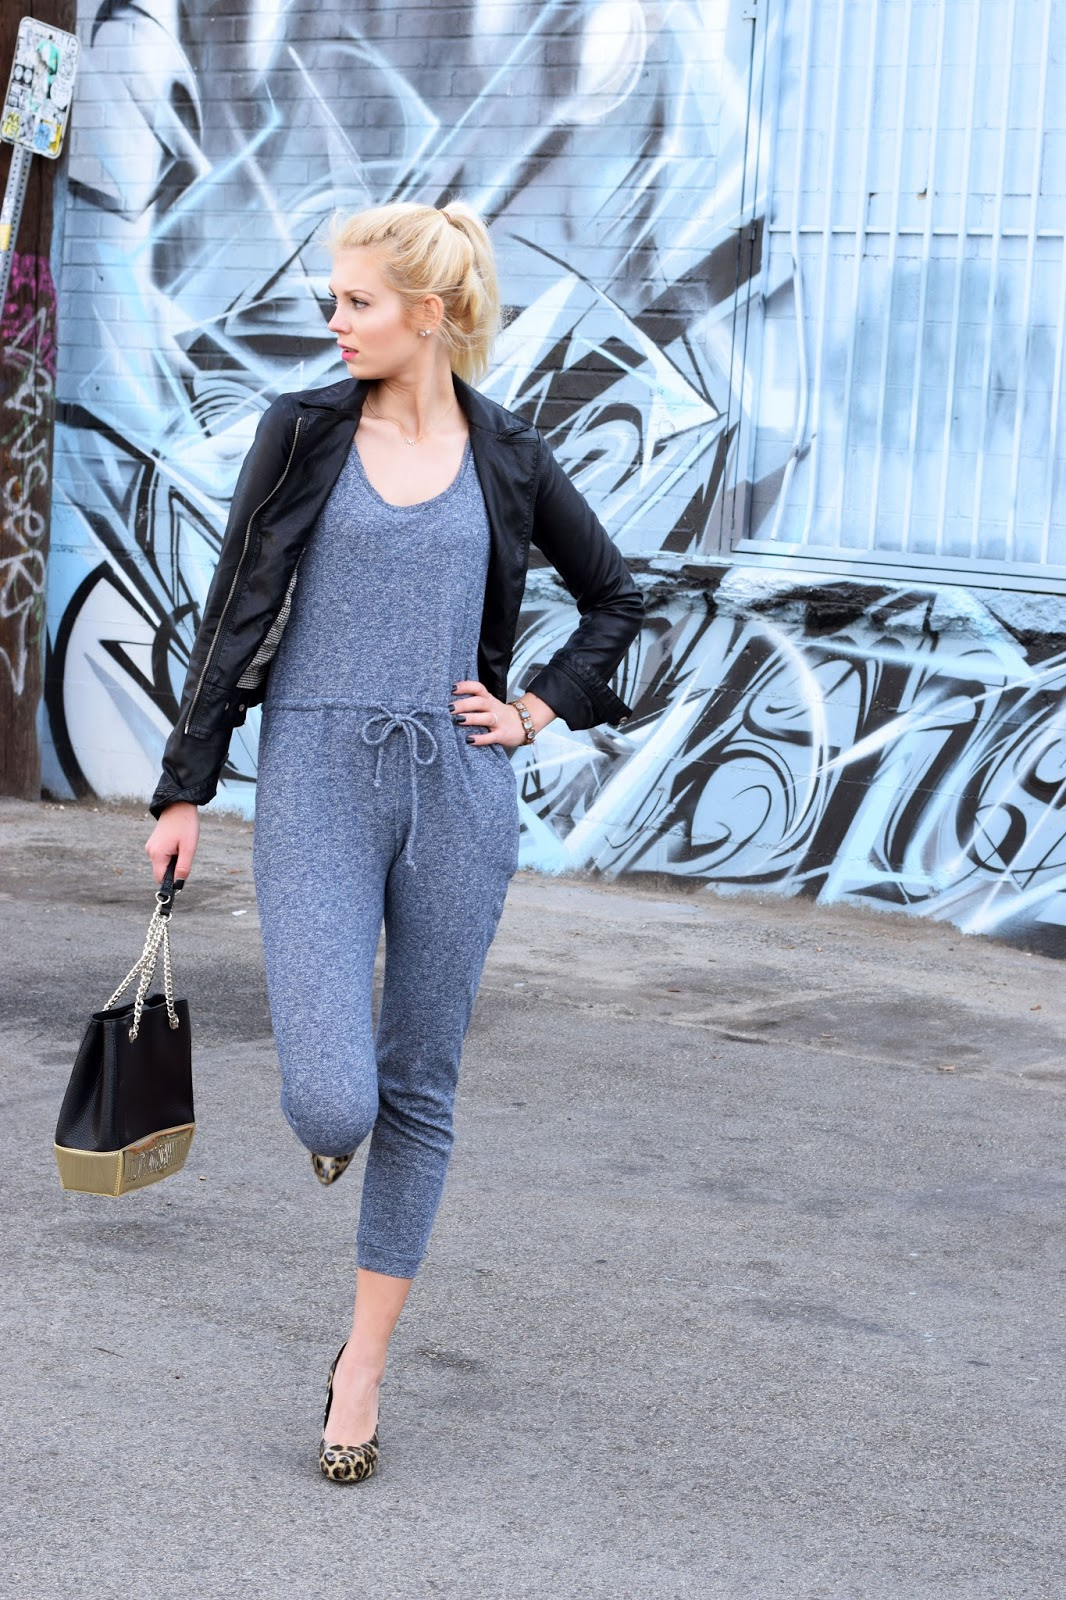 shop tobi, jumpsuit, moschino, purse, leather jacket, arts district, los angeles, graffiti